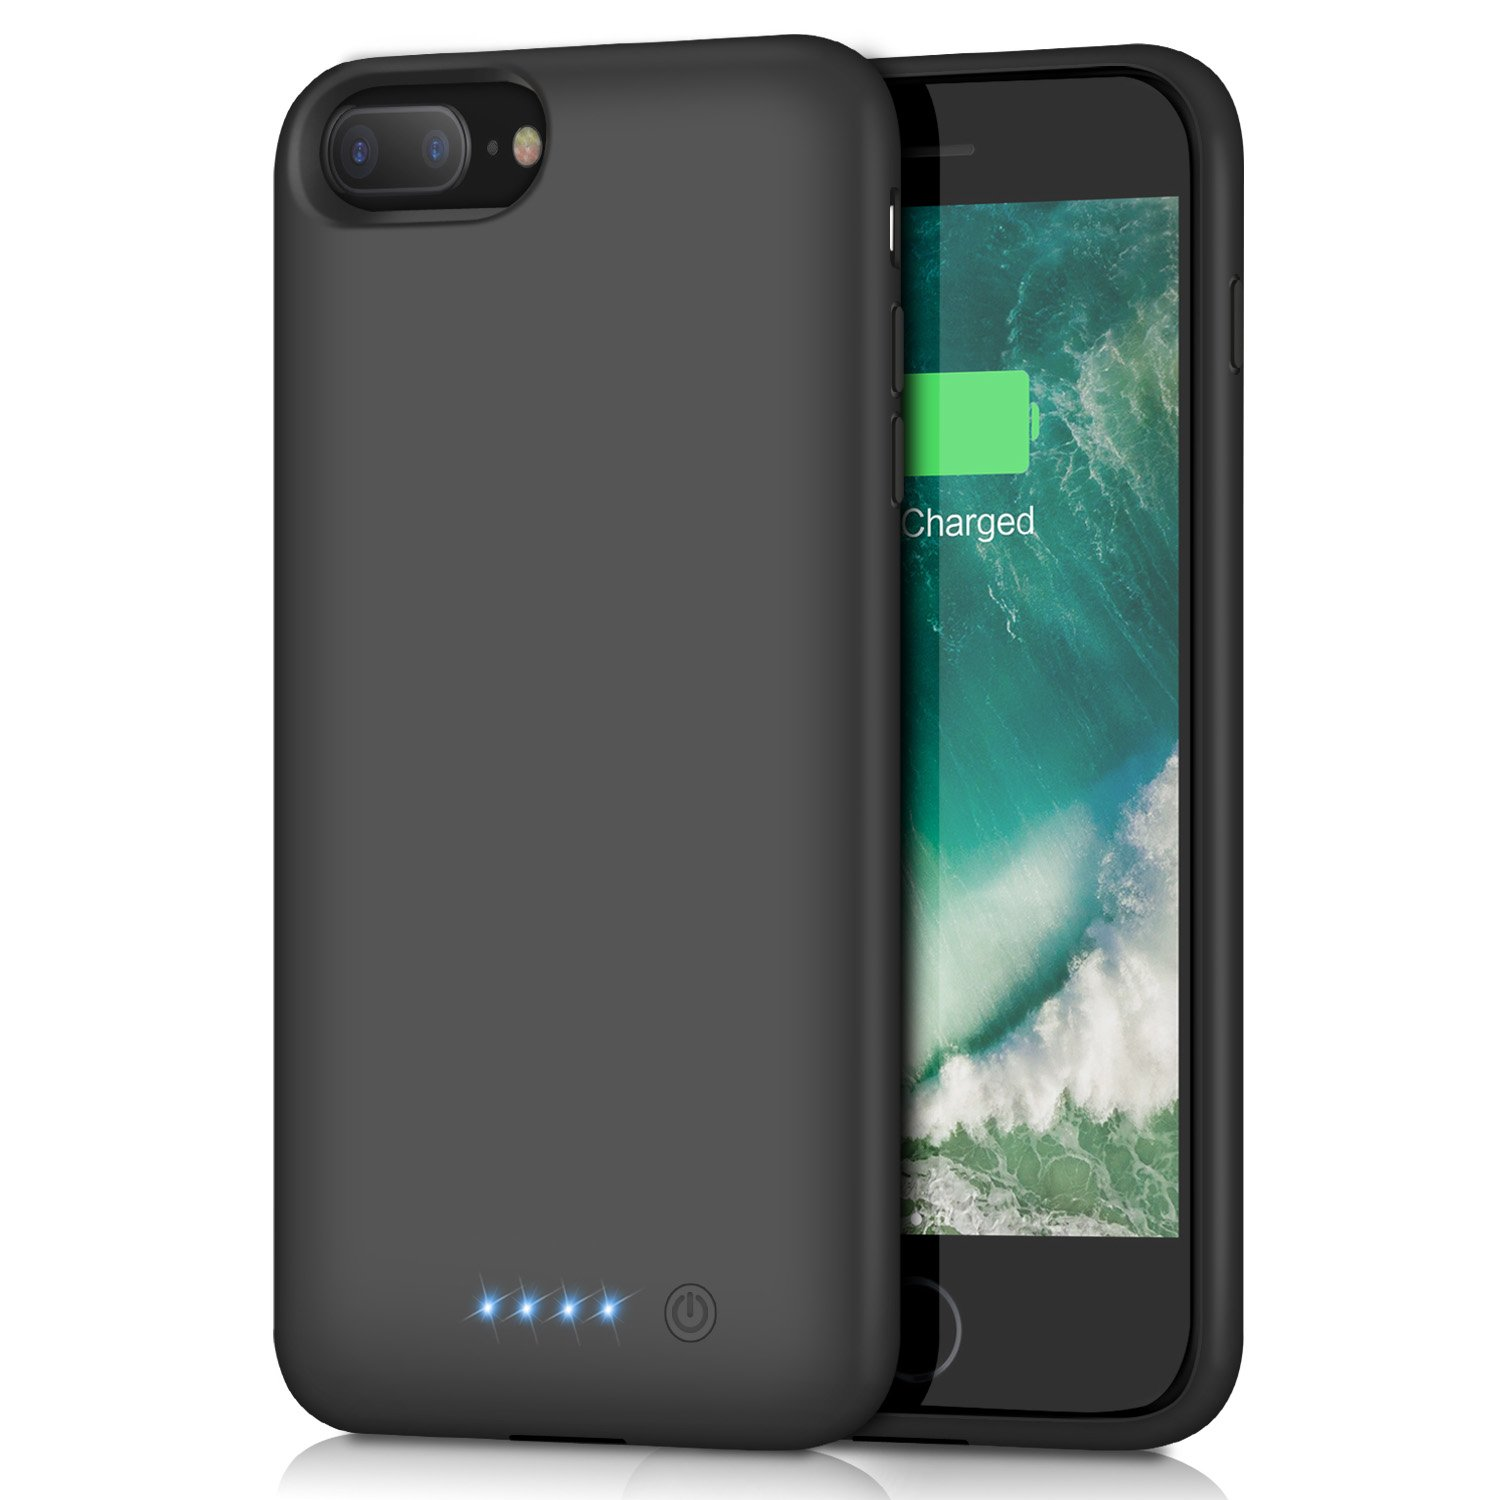 iPhone 8 Plus/7 Plus Battery Case 8500mAh, HETP Rechargeable Extended Battery Pack for iPhone 7Plus 8Plus Charging Case Apple Portable Power Bank (5.5 inch) - Black by HETP (Image #1)